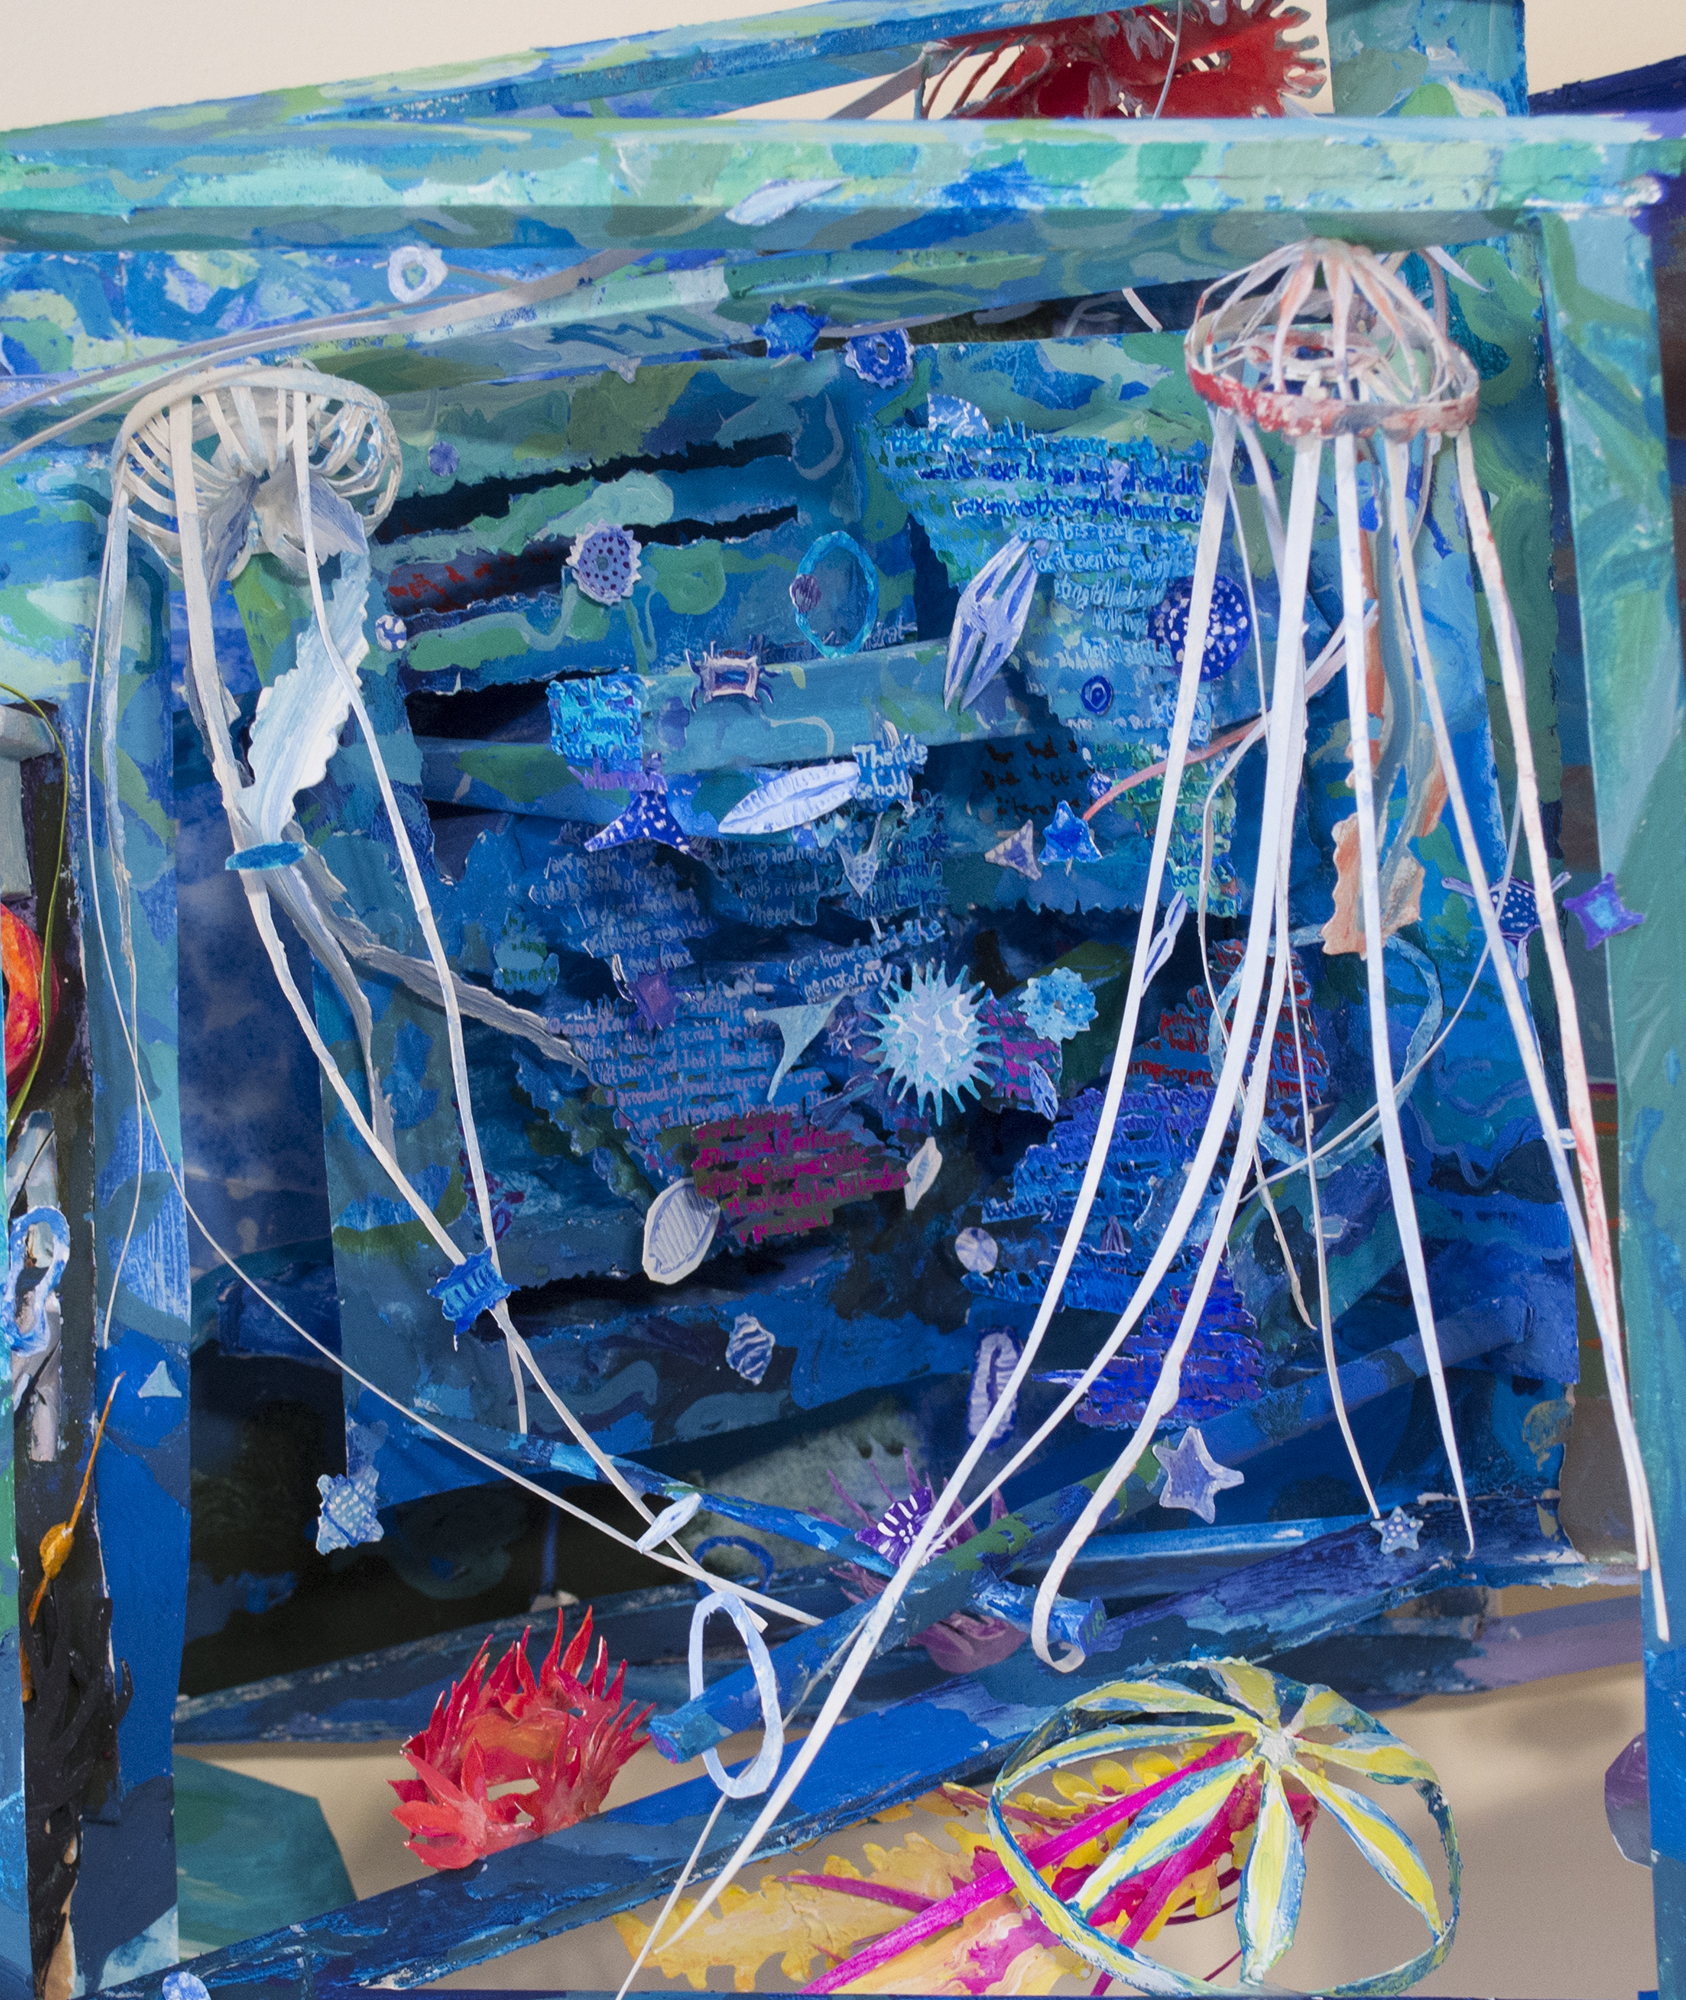 Detail, Beach Reading, 2019, gouache on paper construction with wood support, 16 x 38 x 10 inches